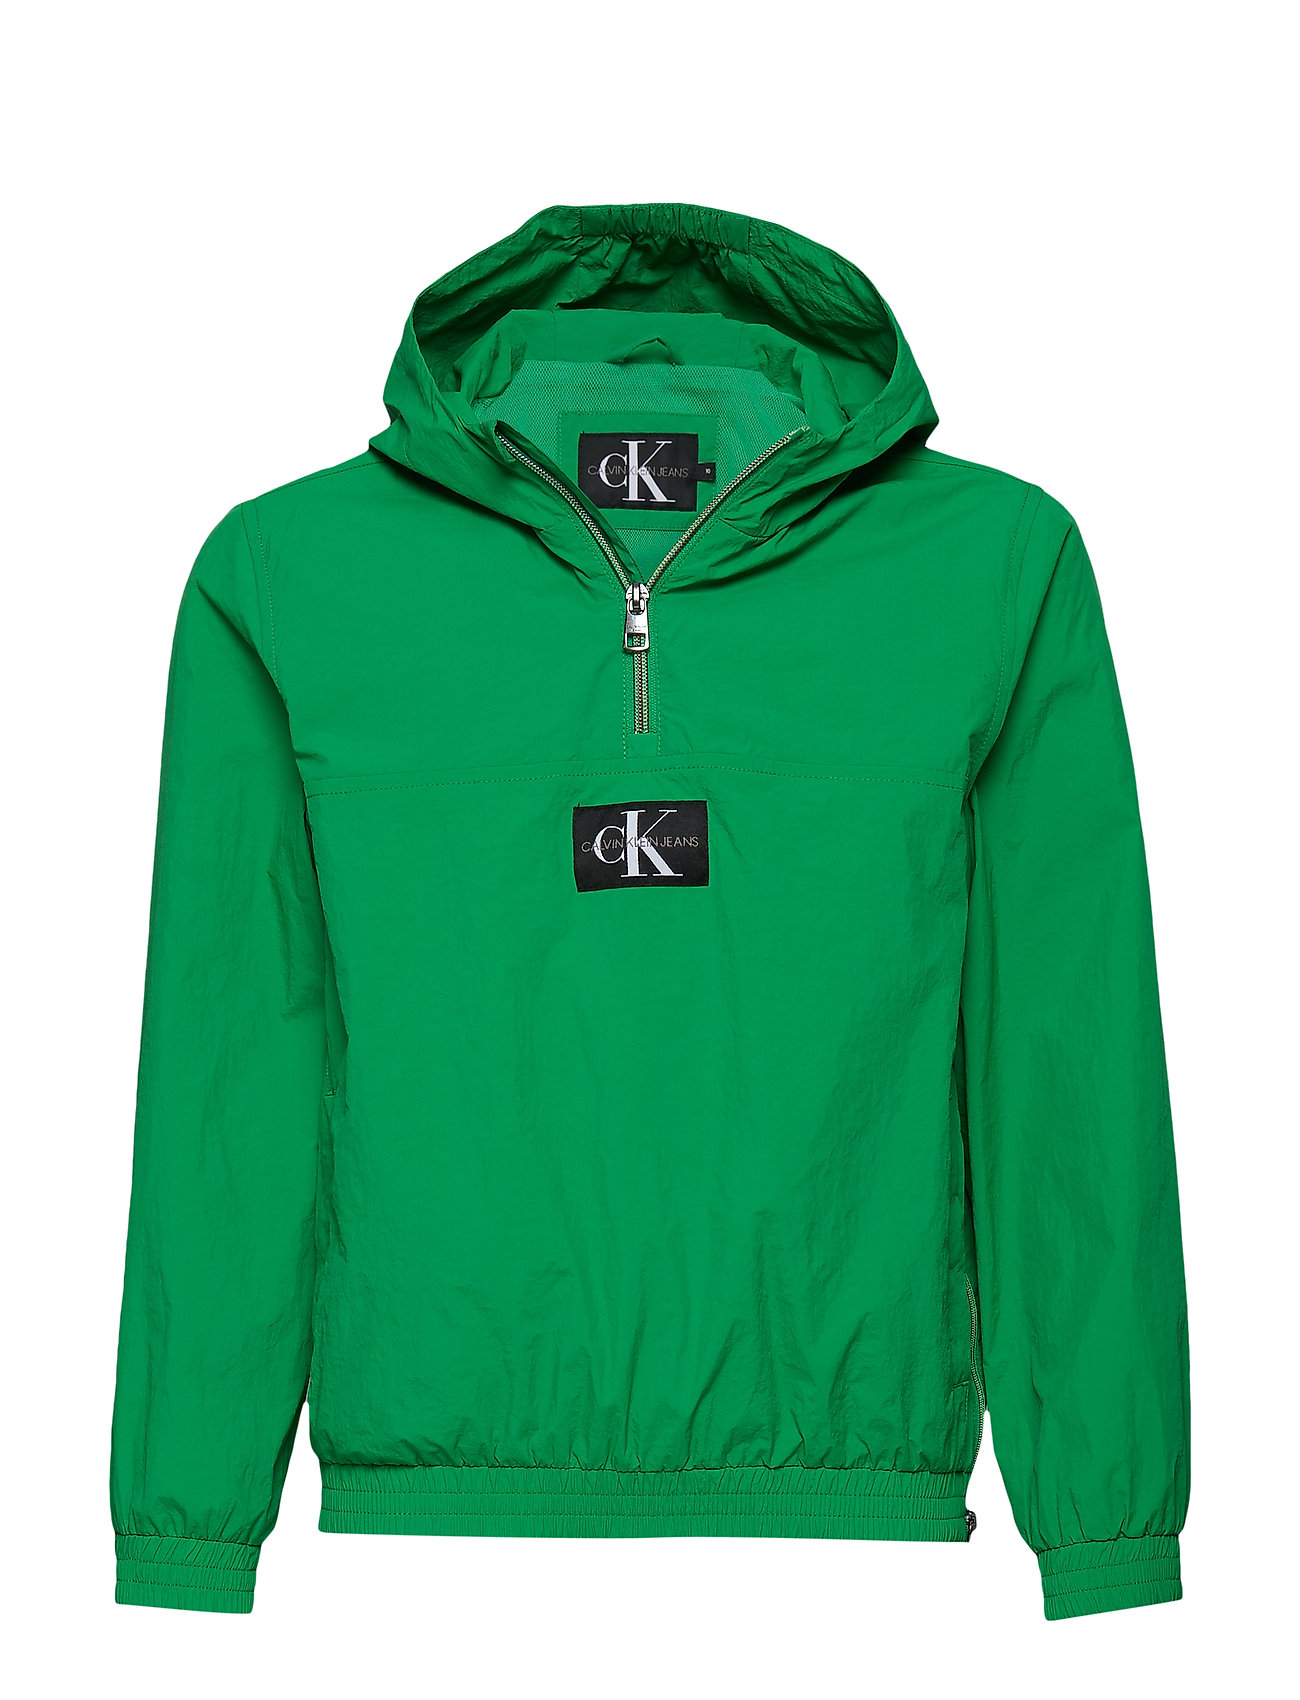 Calvin Klein CK PACKABLE ANORAK WITH BUMBAG - FERN GREEN